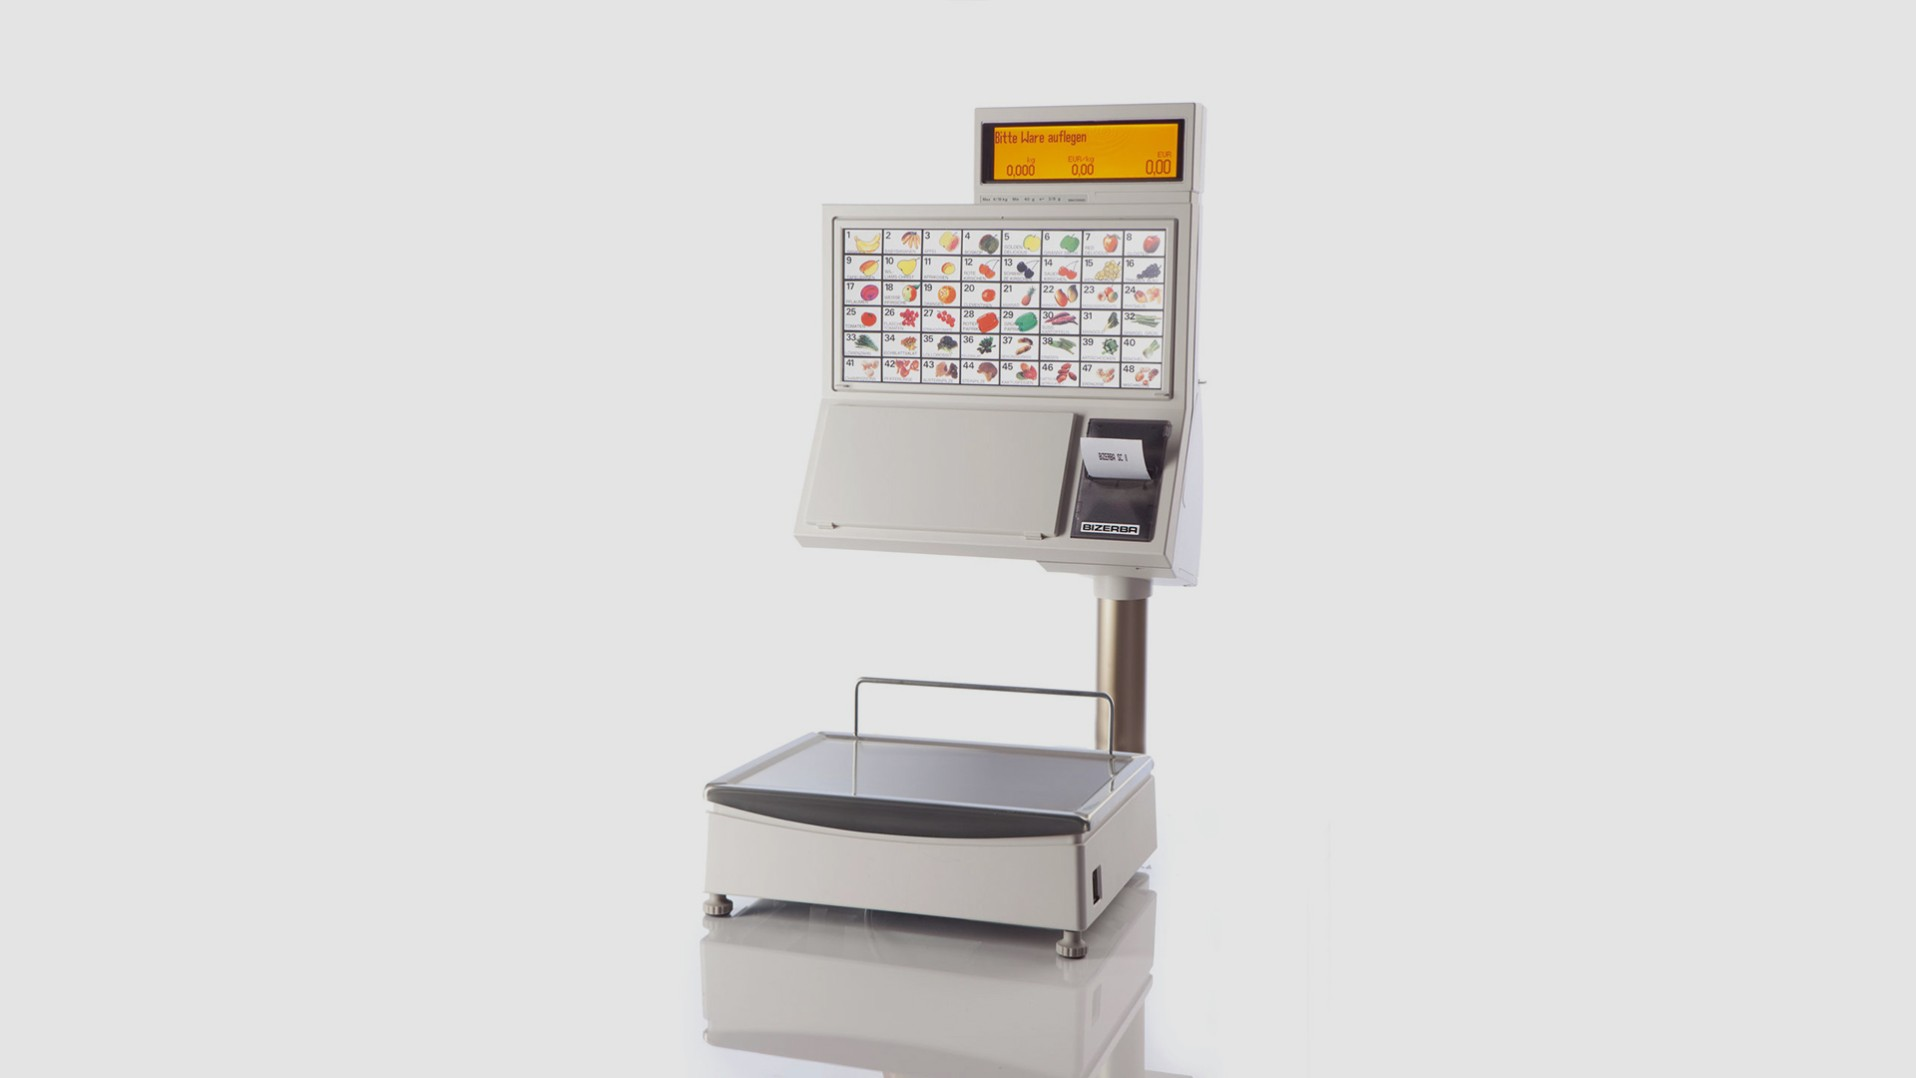 Self-service scale SC II 500 front view